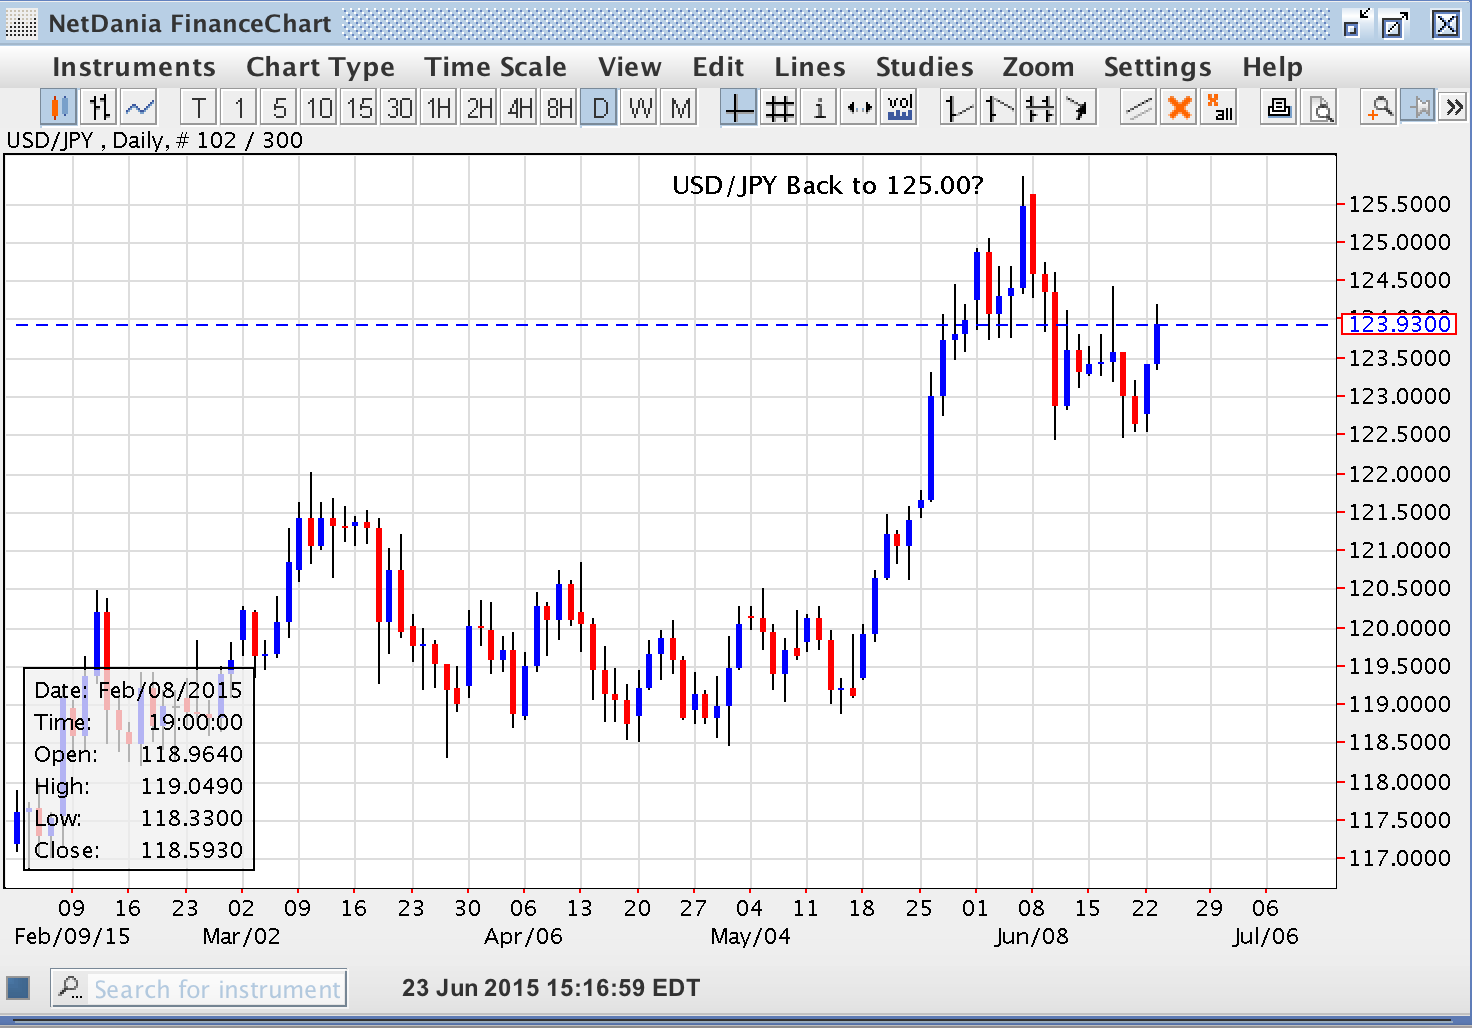 USD/JPY – Back to 125.00?